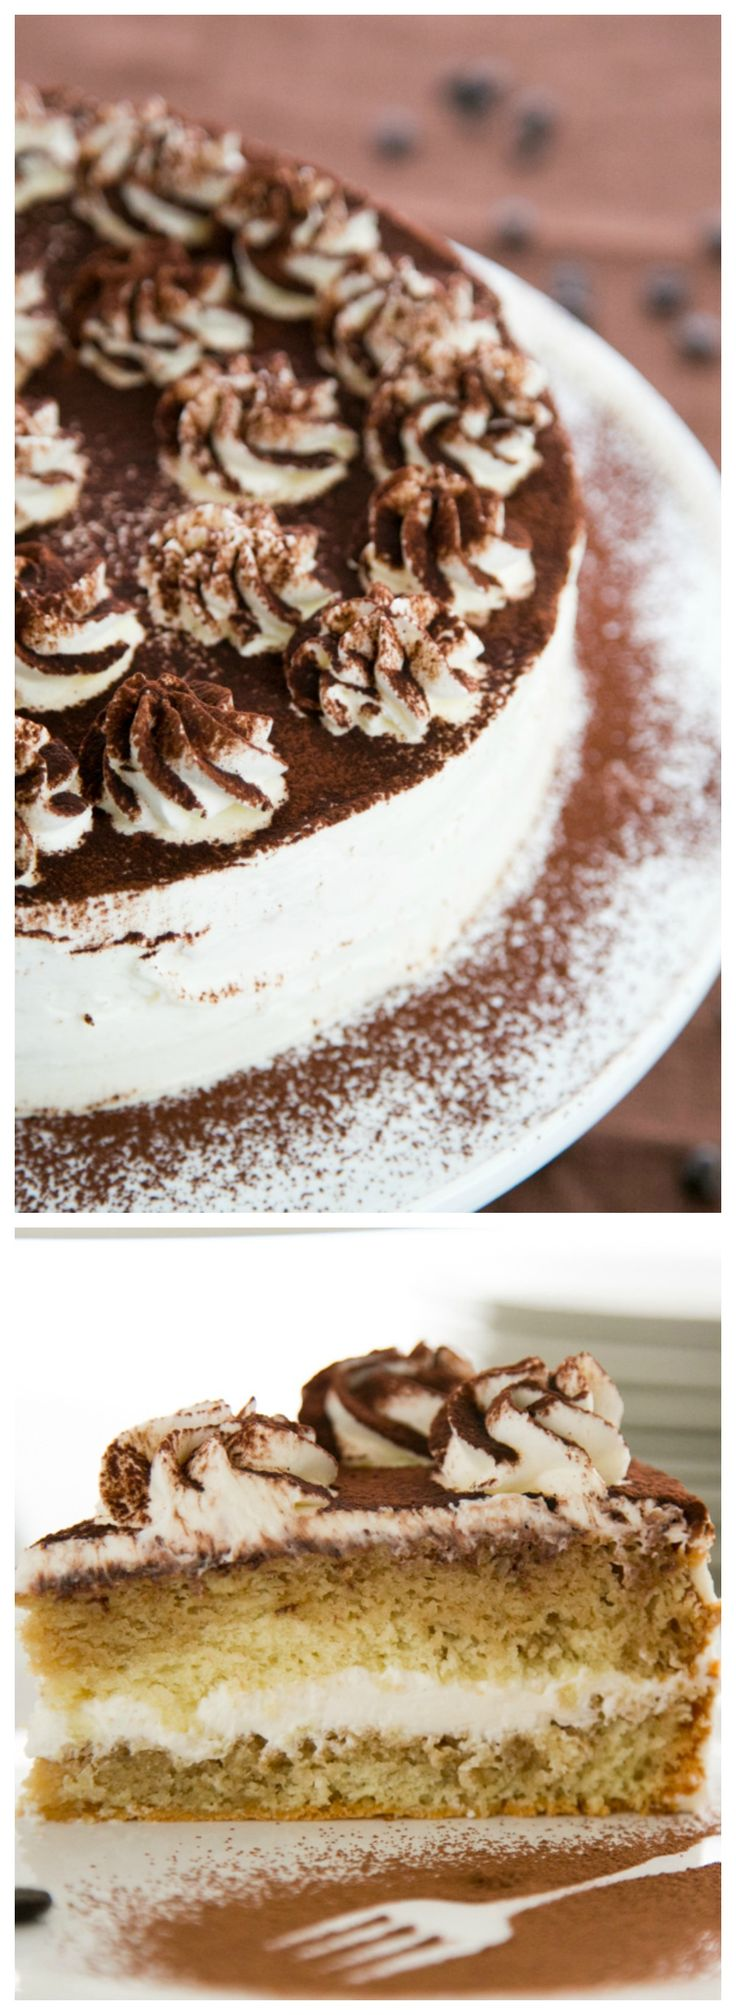 Learn how to make this stunning tiramisu cake with this easy video tutorial from natashaskitchen.com